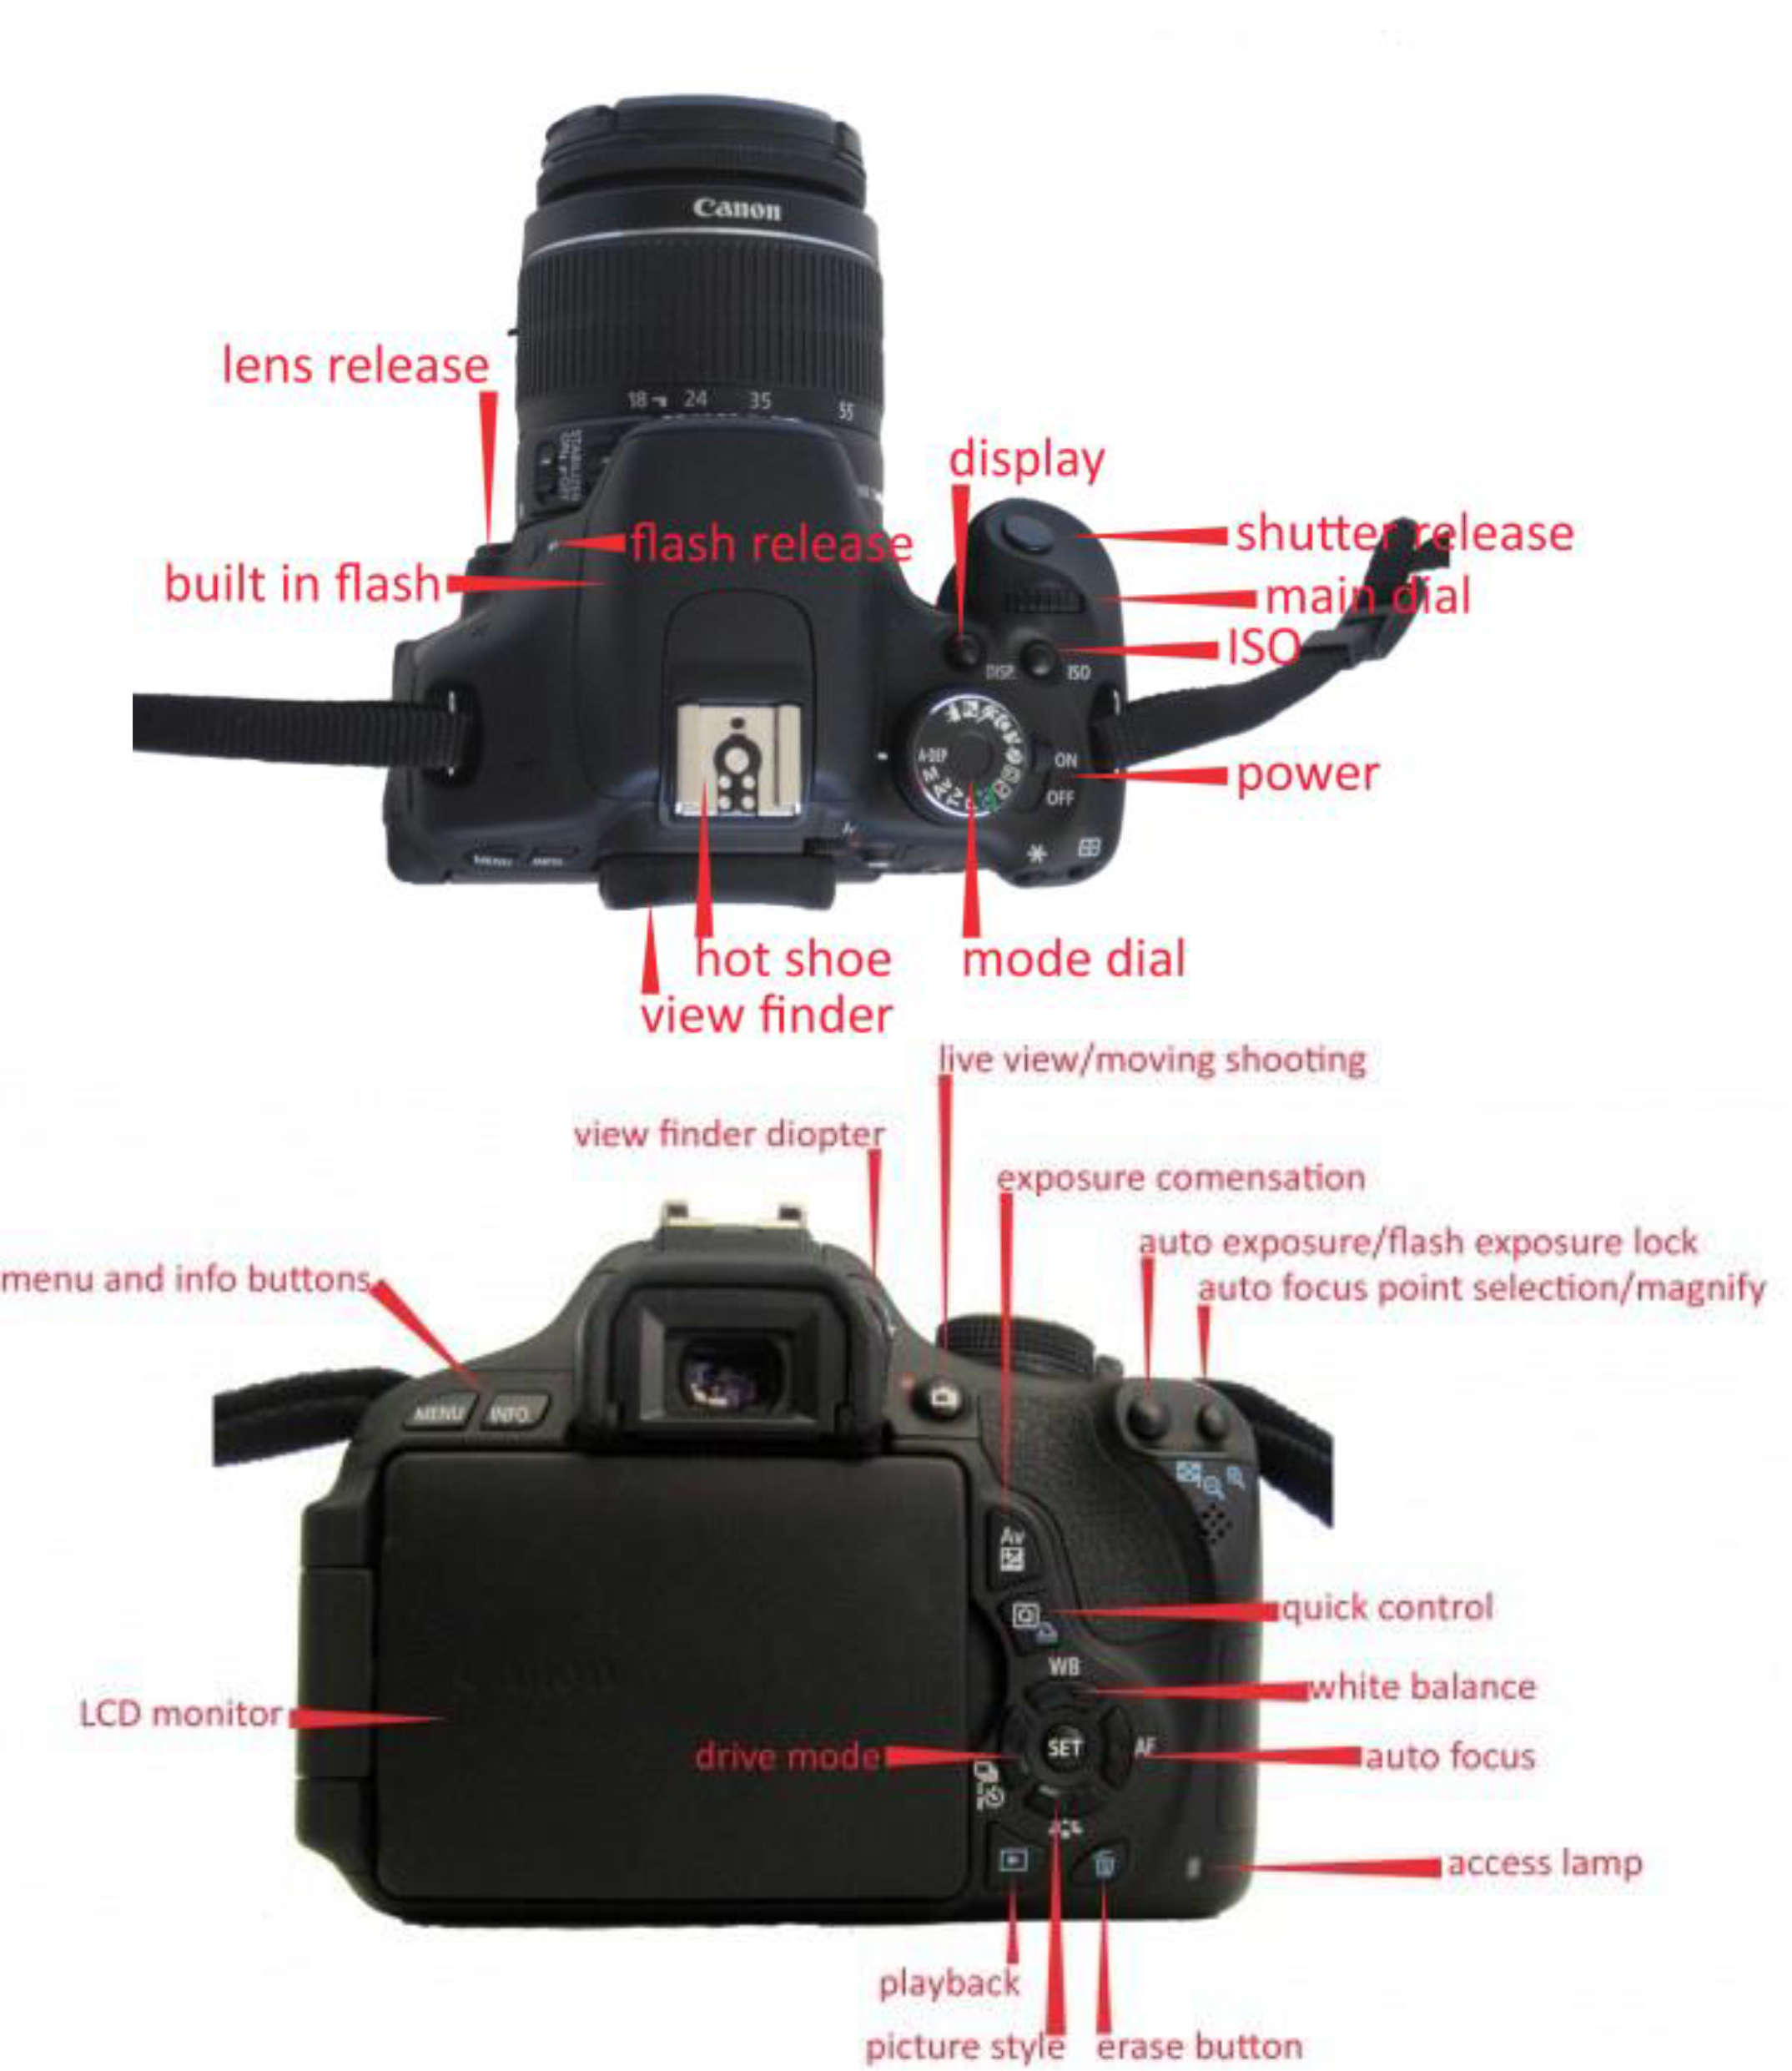 how to change iso on canon rebel t3i video